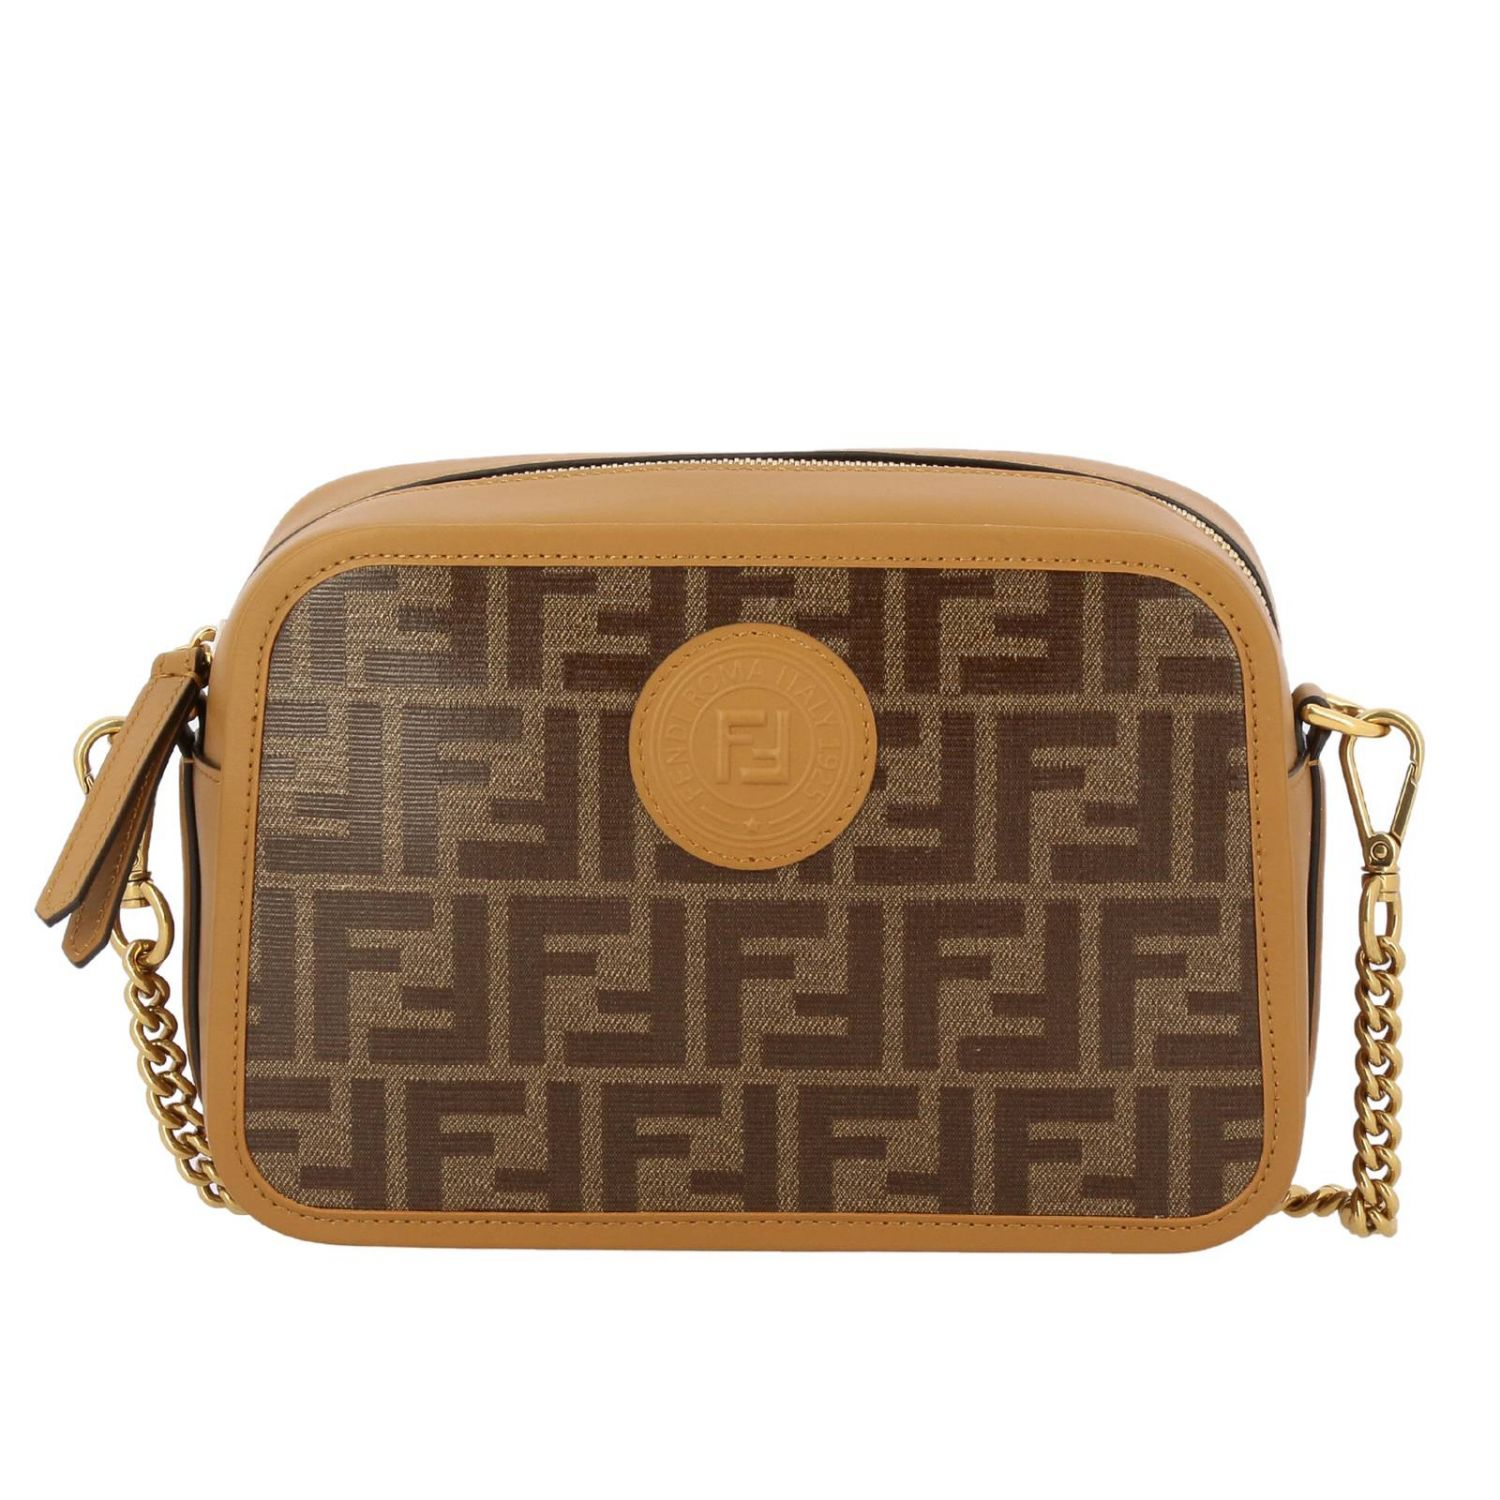 Crossbody Bags Fendi Camera Case Bag In Smooth And Vitrified Leather With Ff Fendi Print